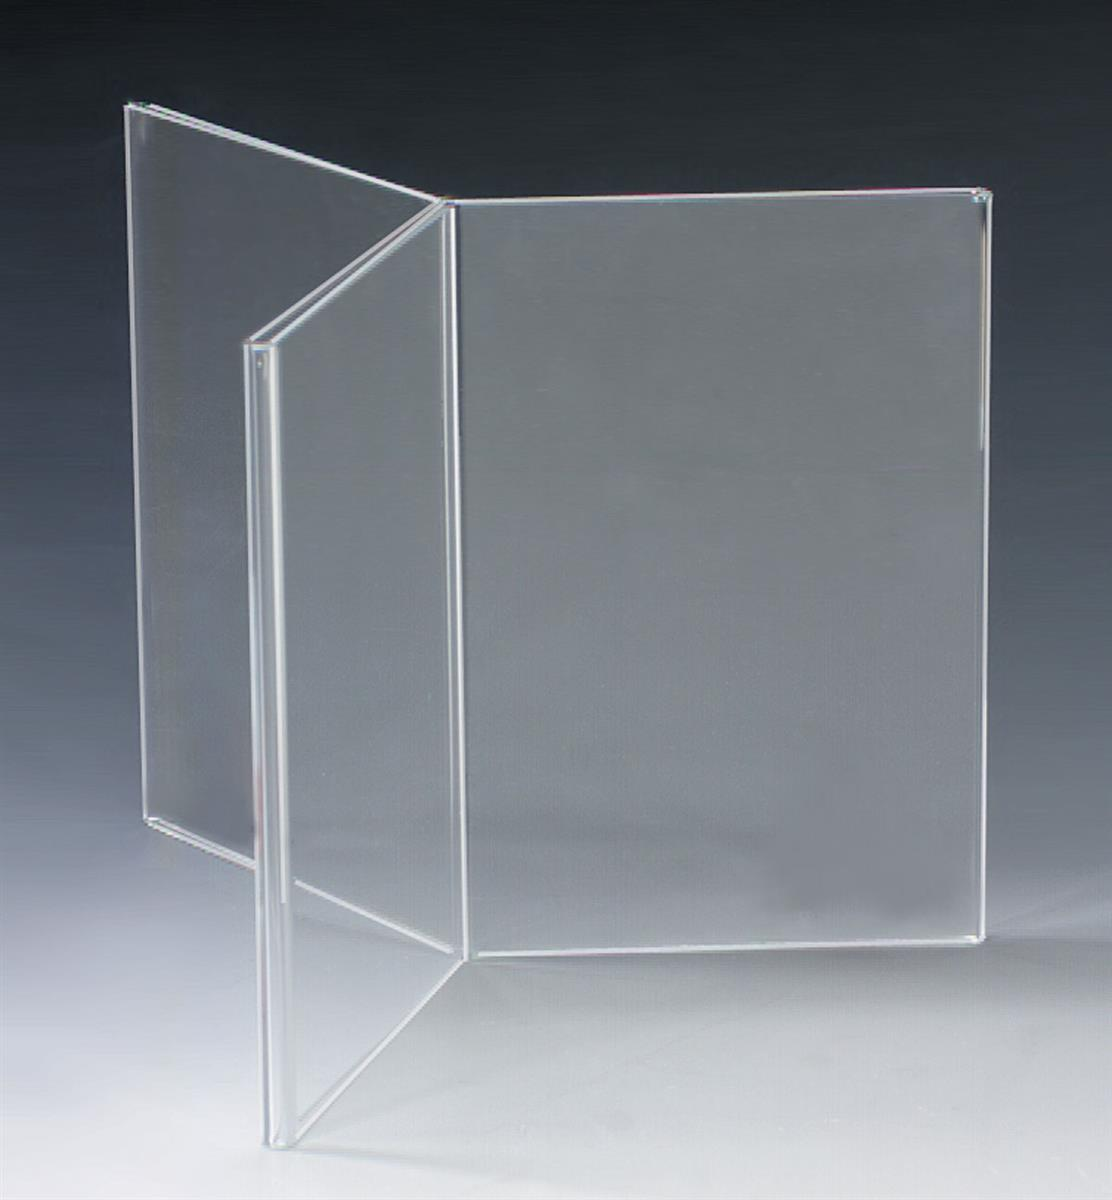 Acrylic Table Tent 6 Panel Display With Top Insert Design